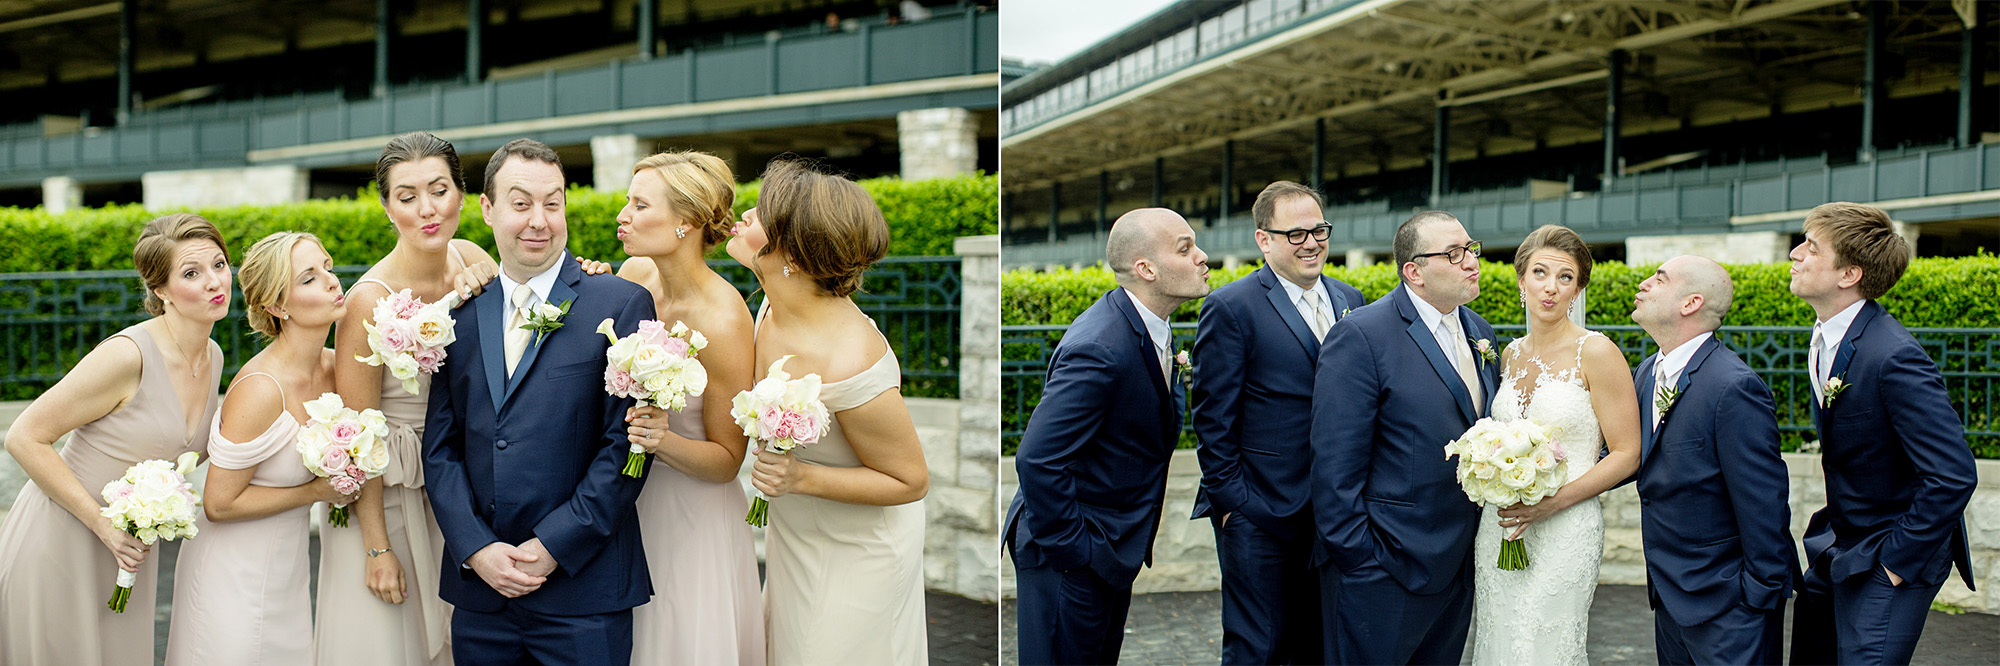 Seriously_Sabrina_Photography_Lexington_Kentucky_Downtown_Keeneland_Clubhouse_Wedding_Spitzer_66.jpg